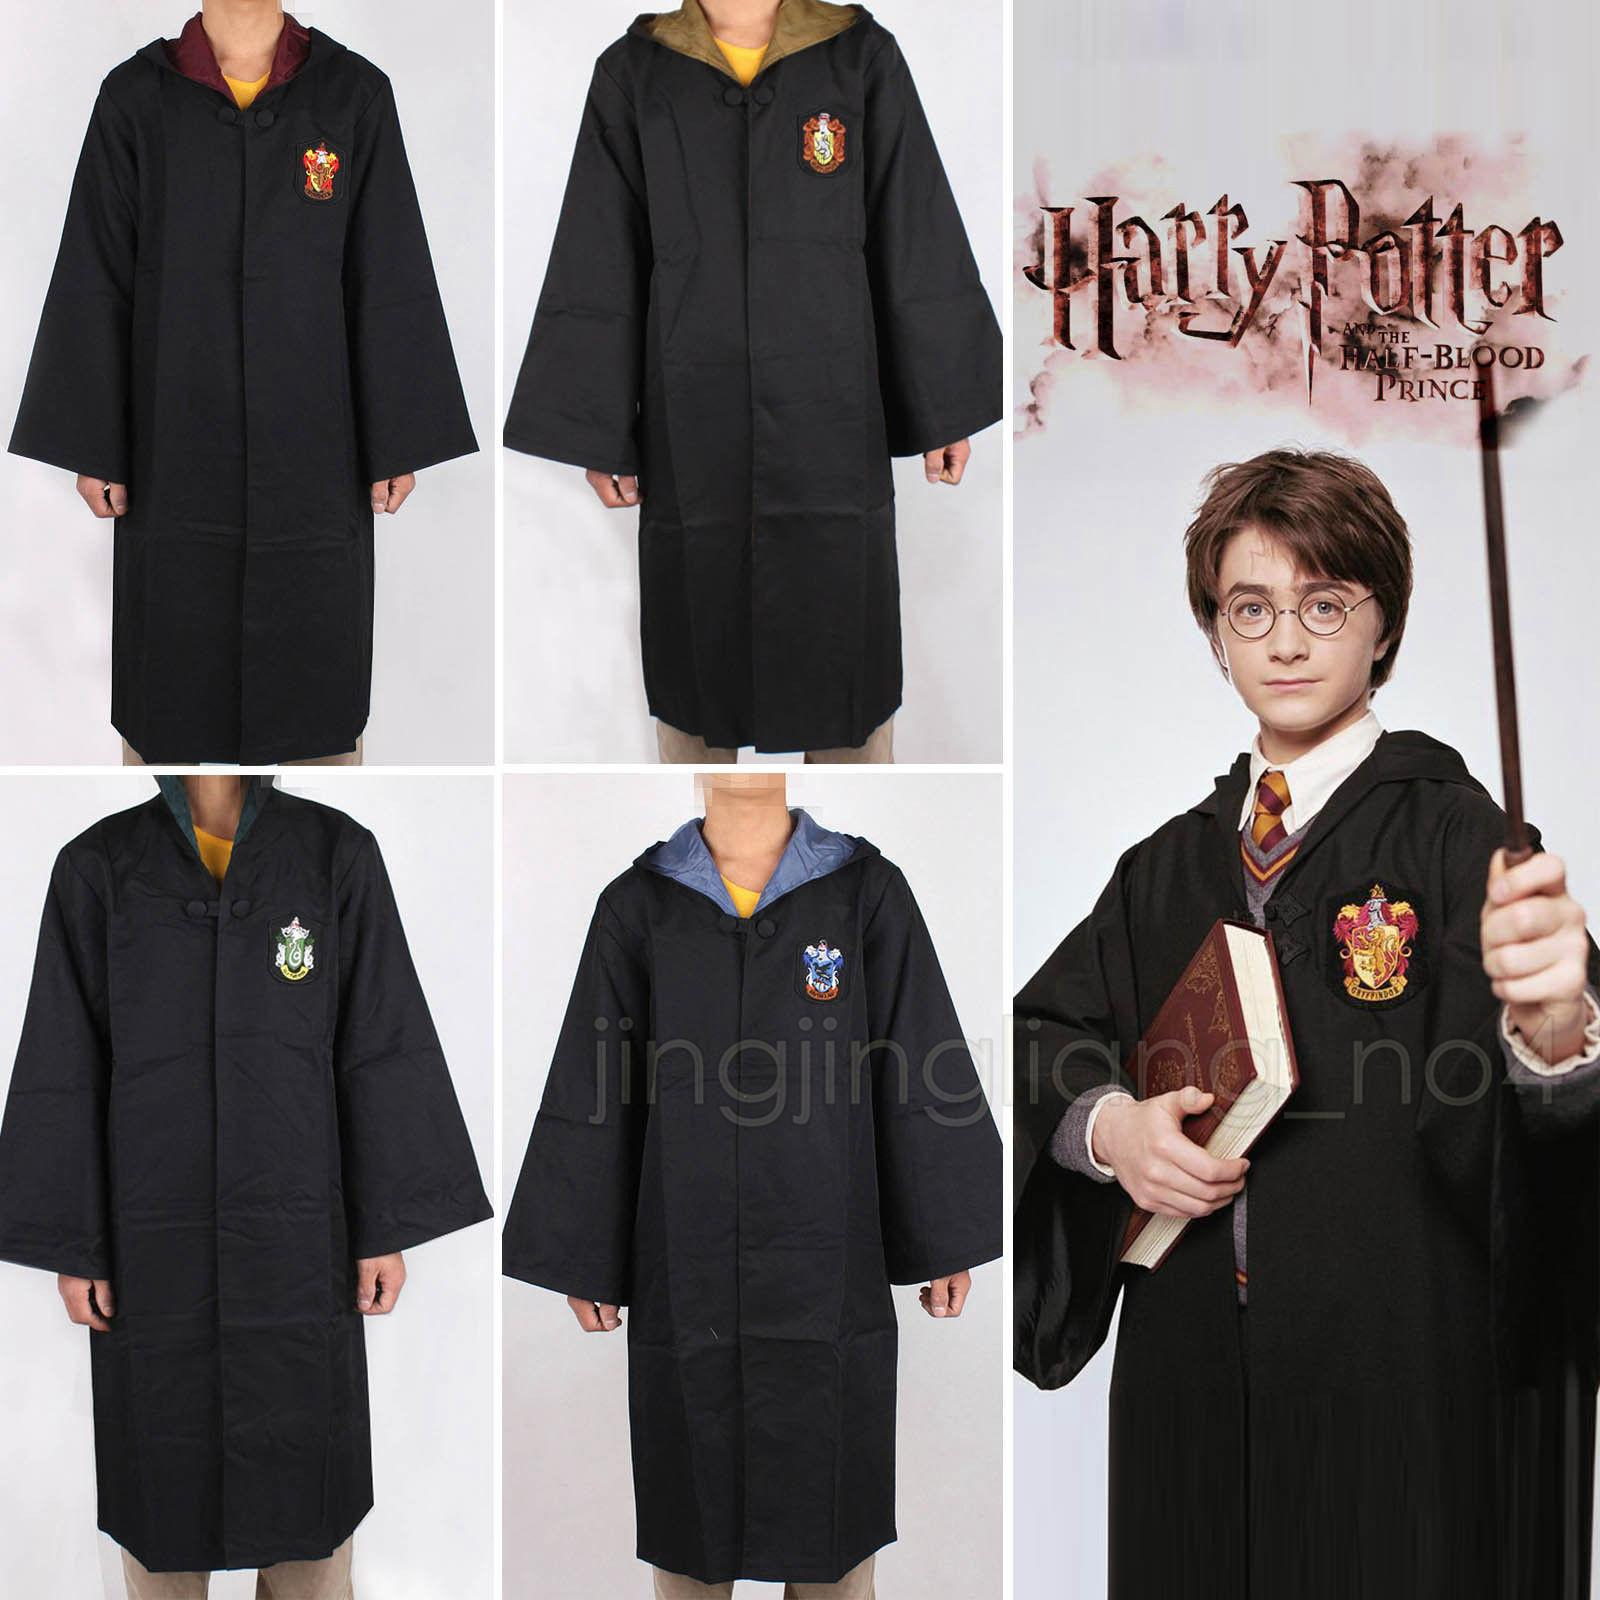 Adult Kids Potter Gryffindor Cloak Robe Women Men Hufflepuff Ravenclaw Slytherin Clothing For Harries Halloween Costume Cosplay DDA600